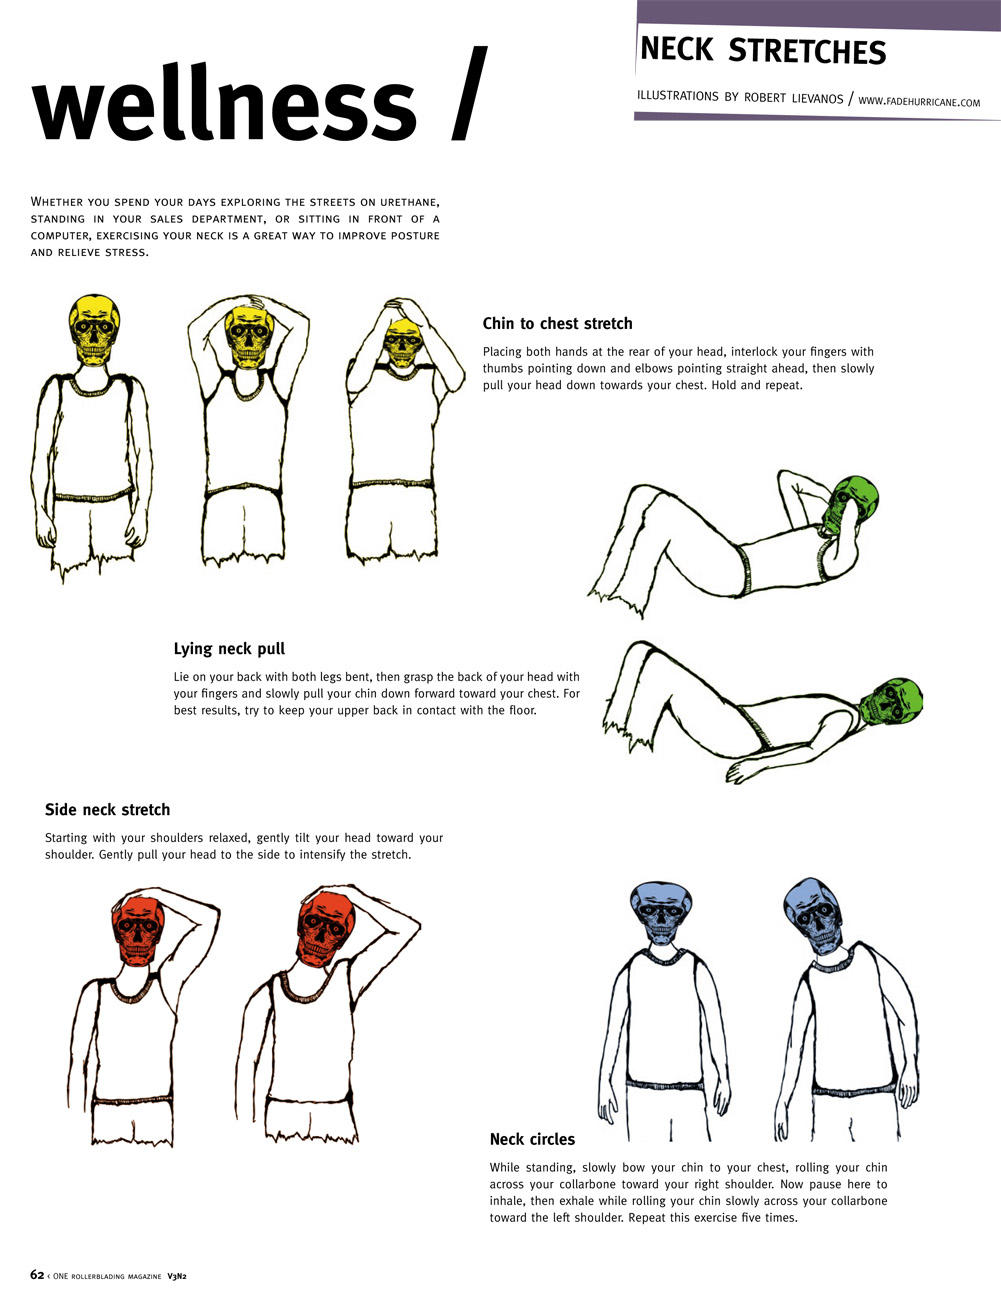 #9: Neck Stretches